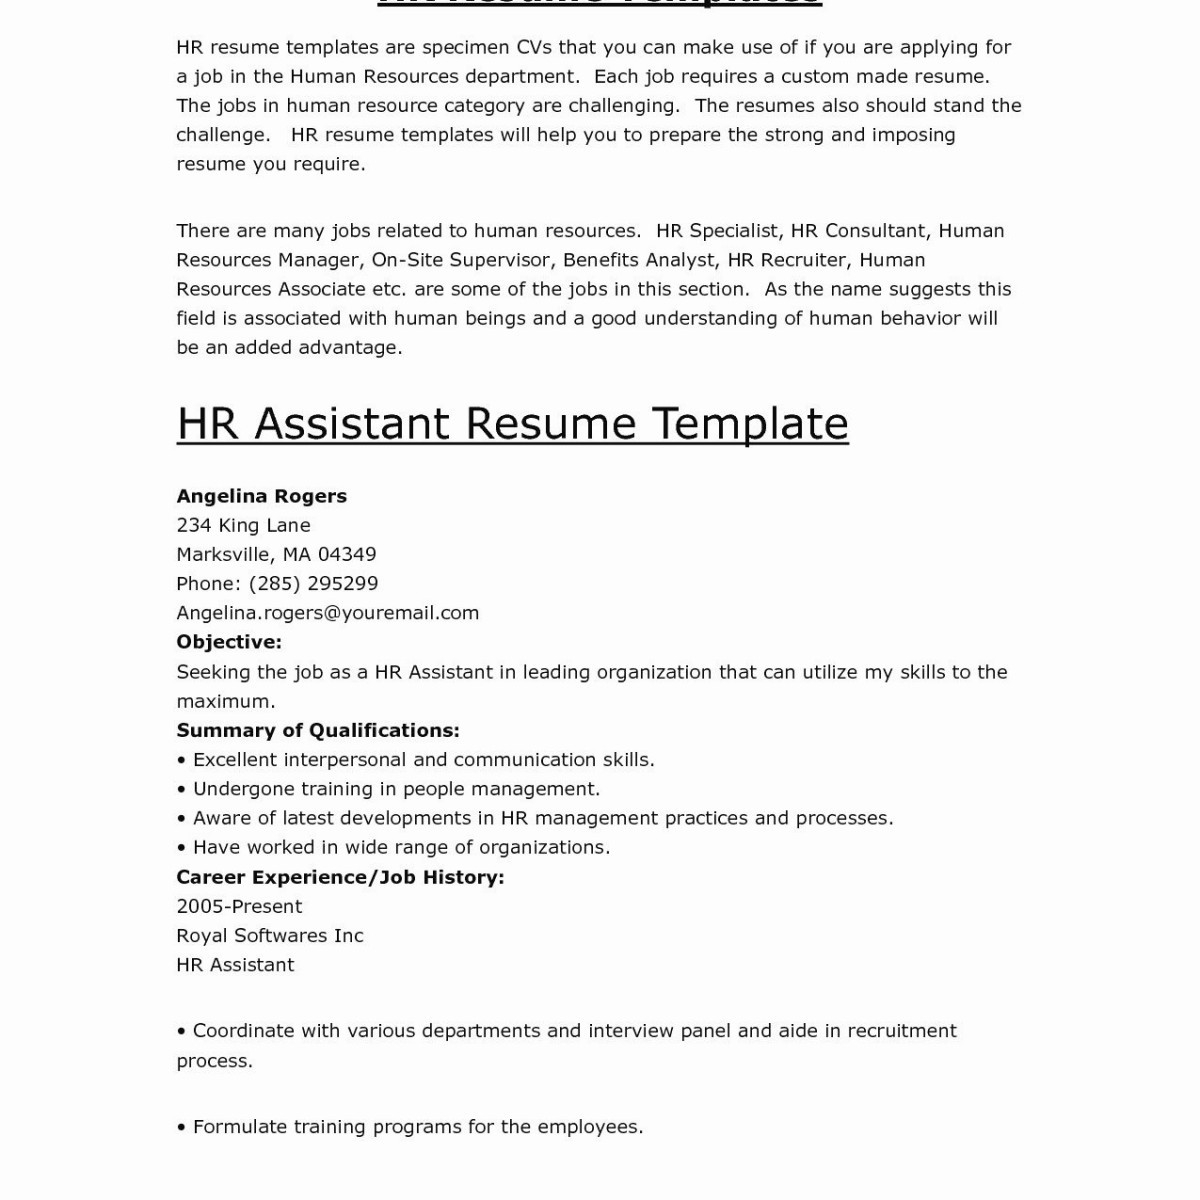 babysitters resume template example-19 Beautiful Nanny Job Description for Resume from Nanny Job Description For Resume source maths 9-k